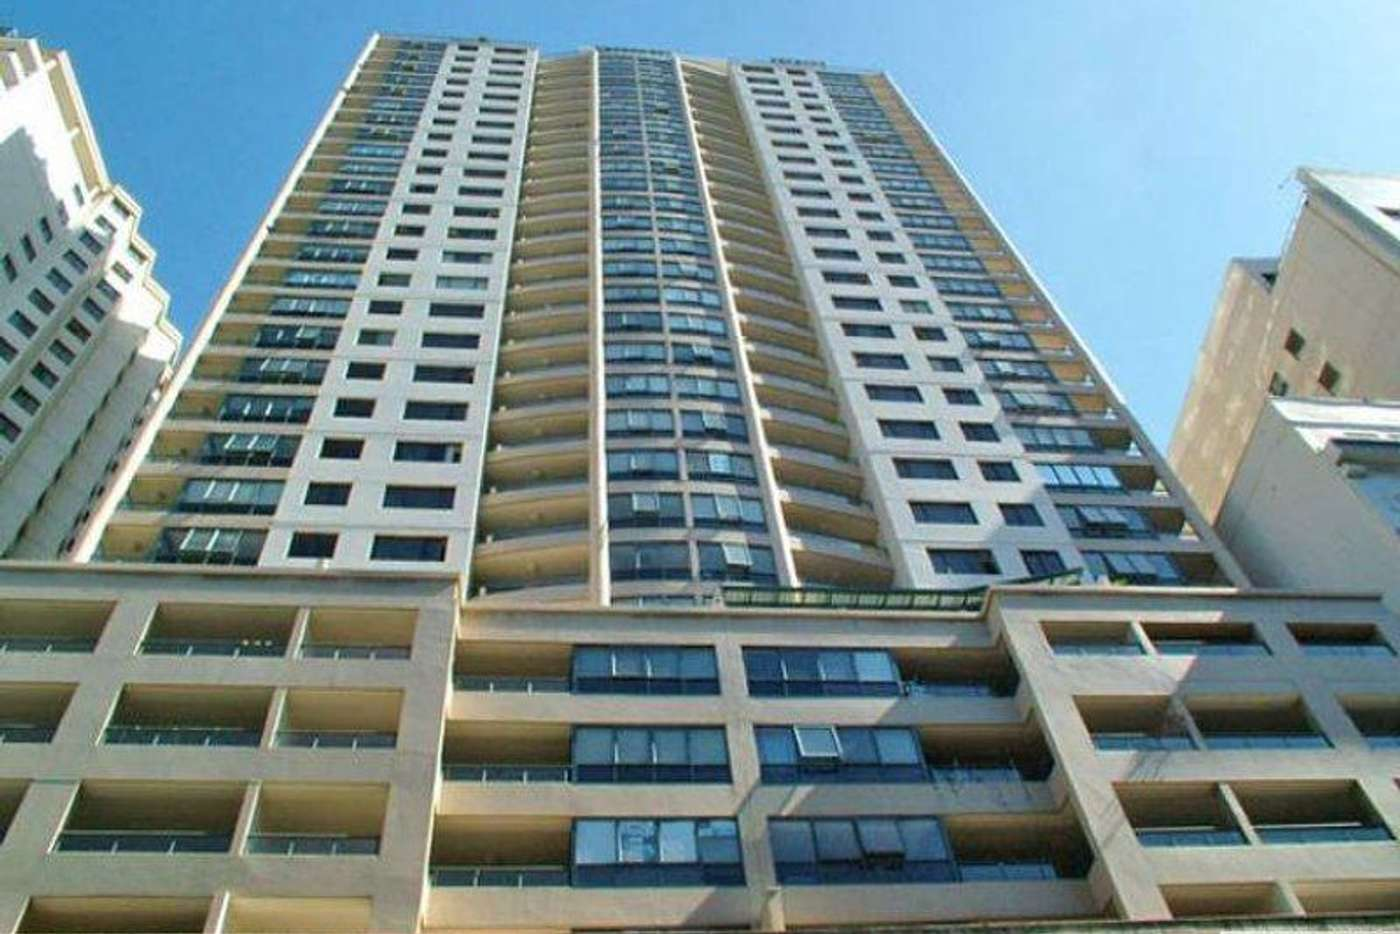 Main view of Homely apartment listing, 418 Pitt Street, Sydney NSW 2000